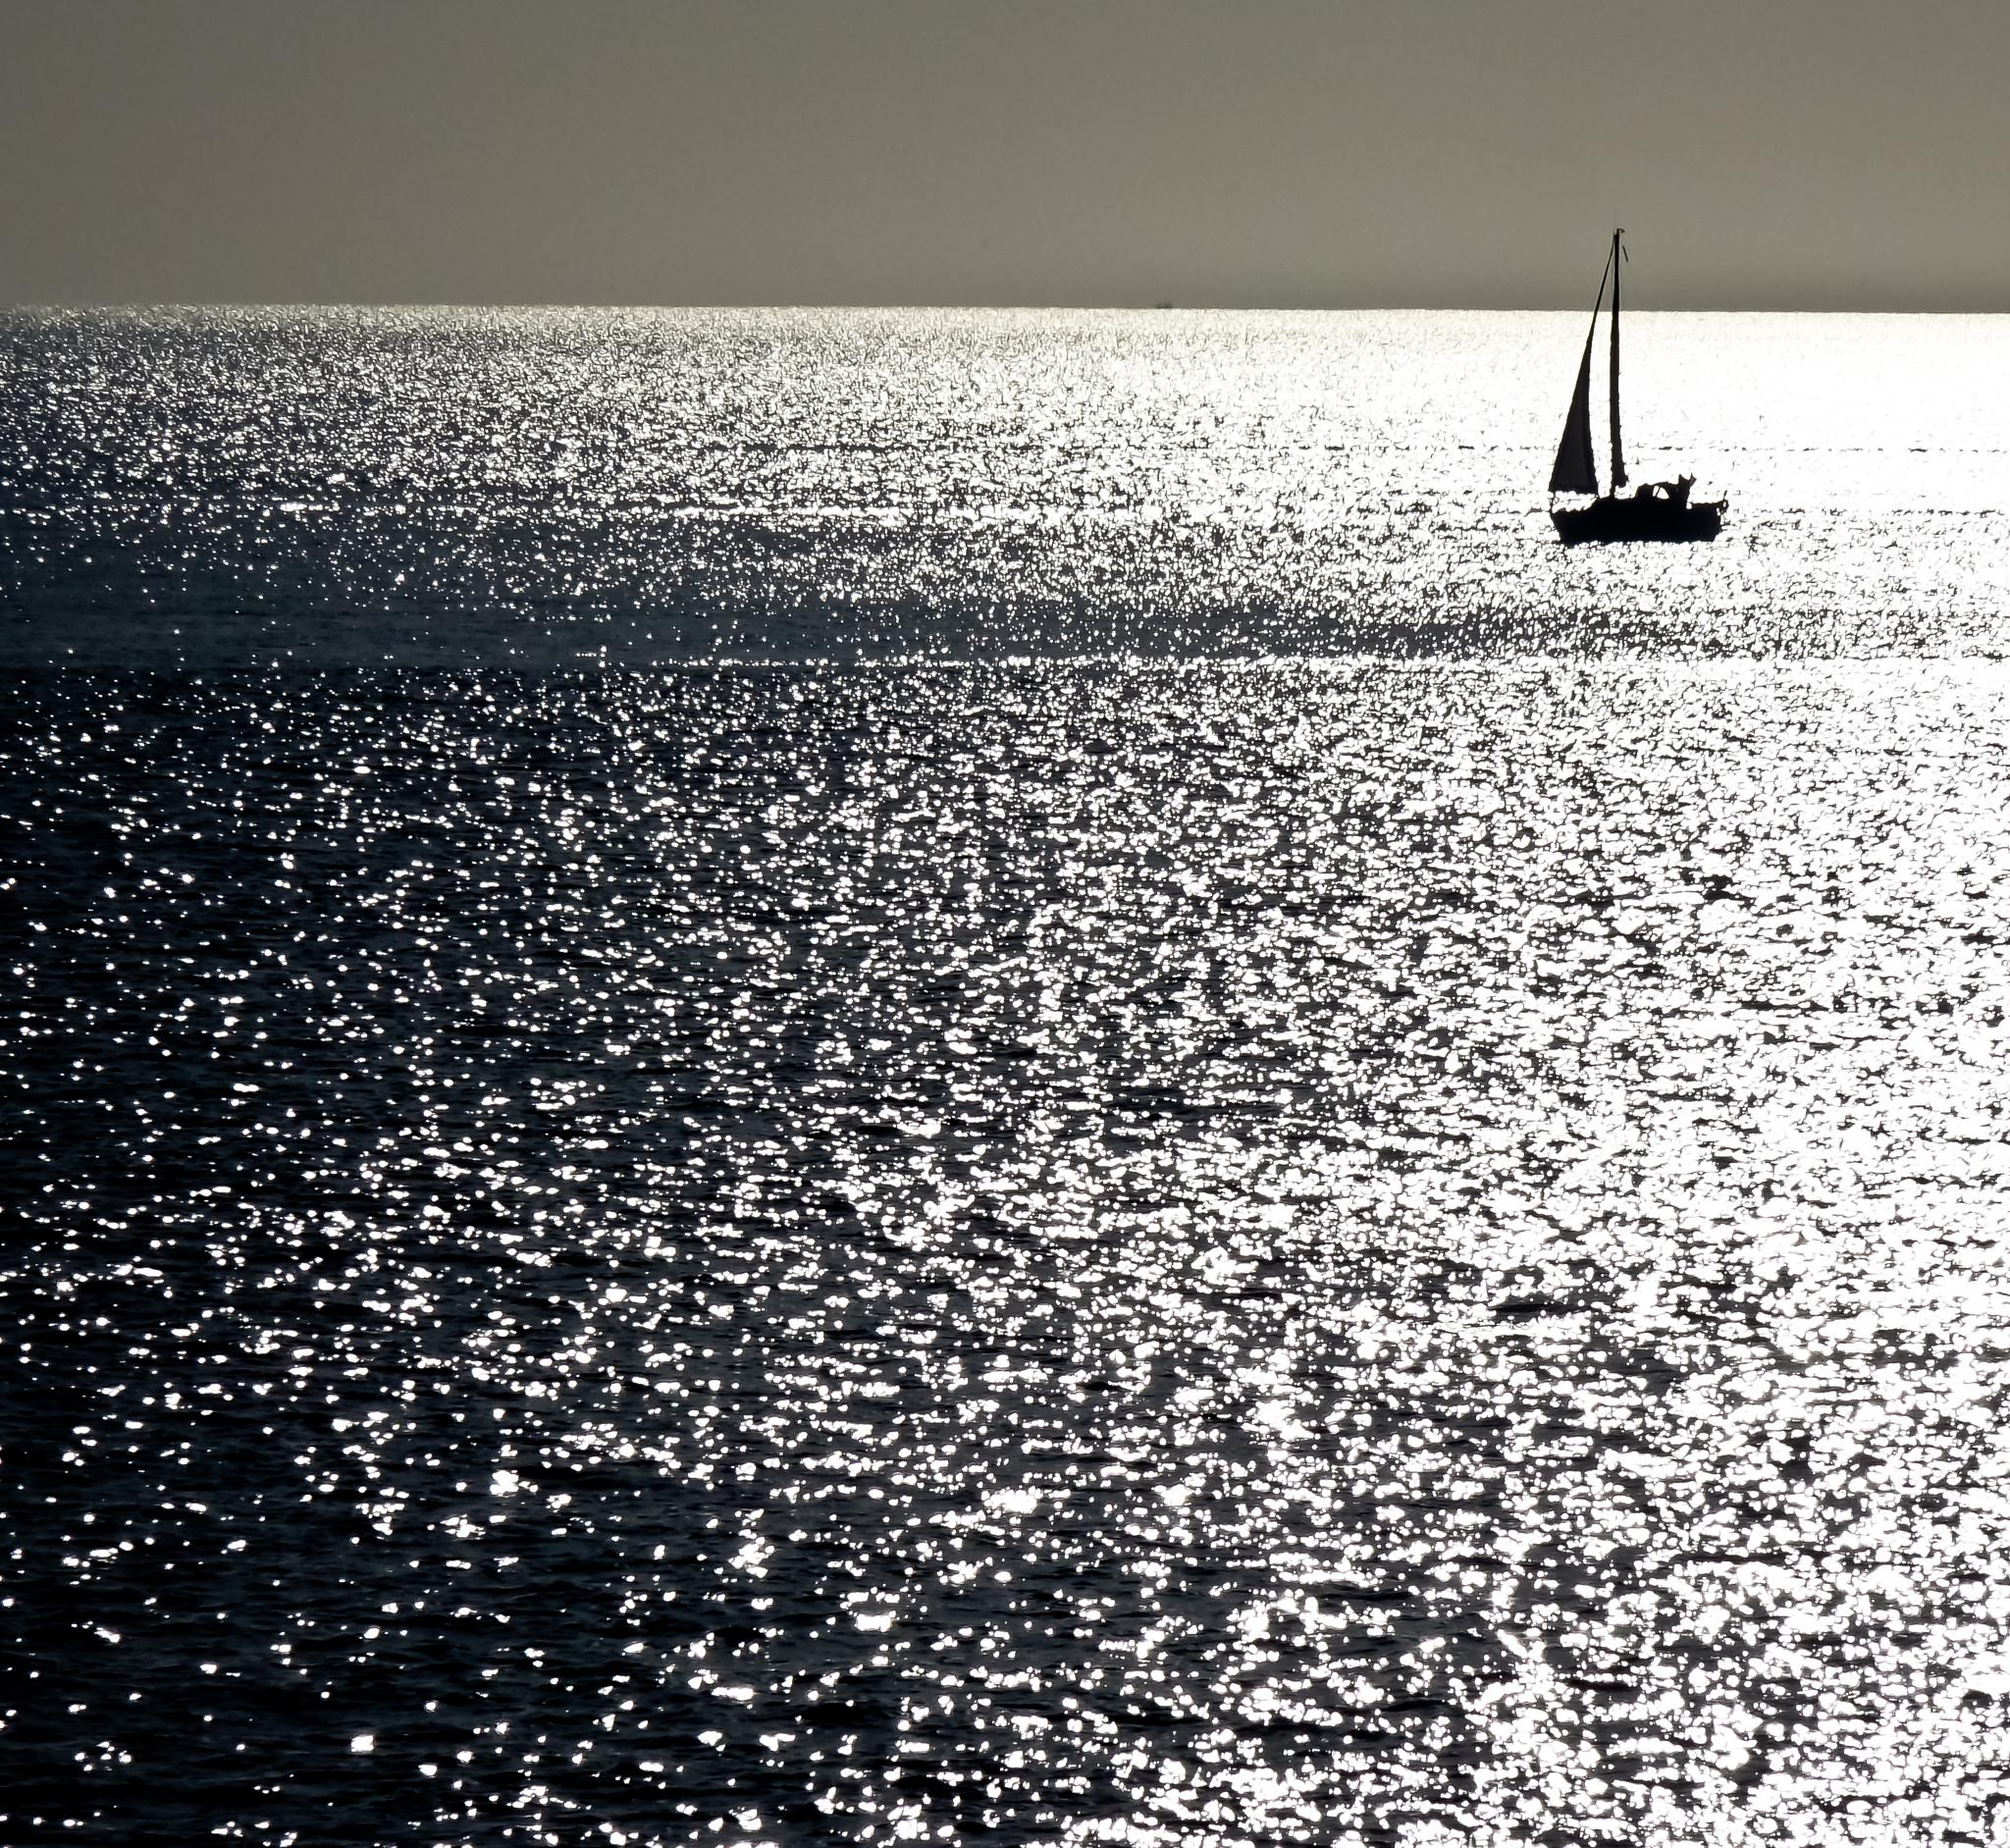 Sail away by Peter Edwardo Vicente.